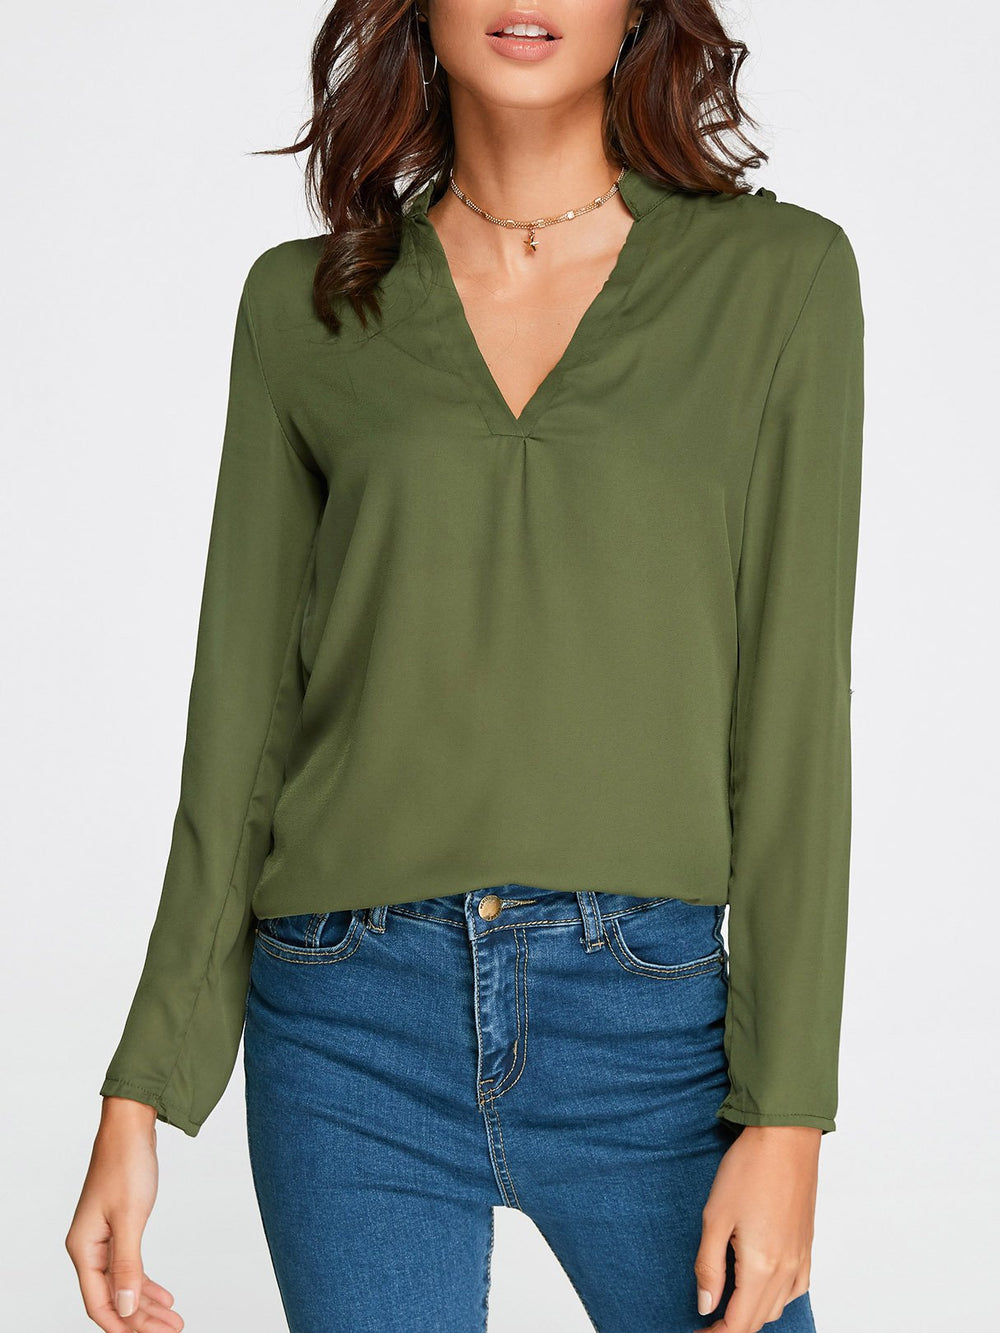 V-Neck Cut Out Long Sleeve Green Top